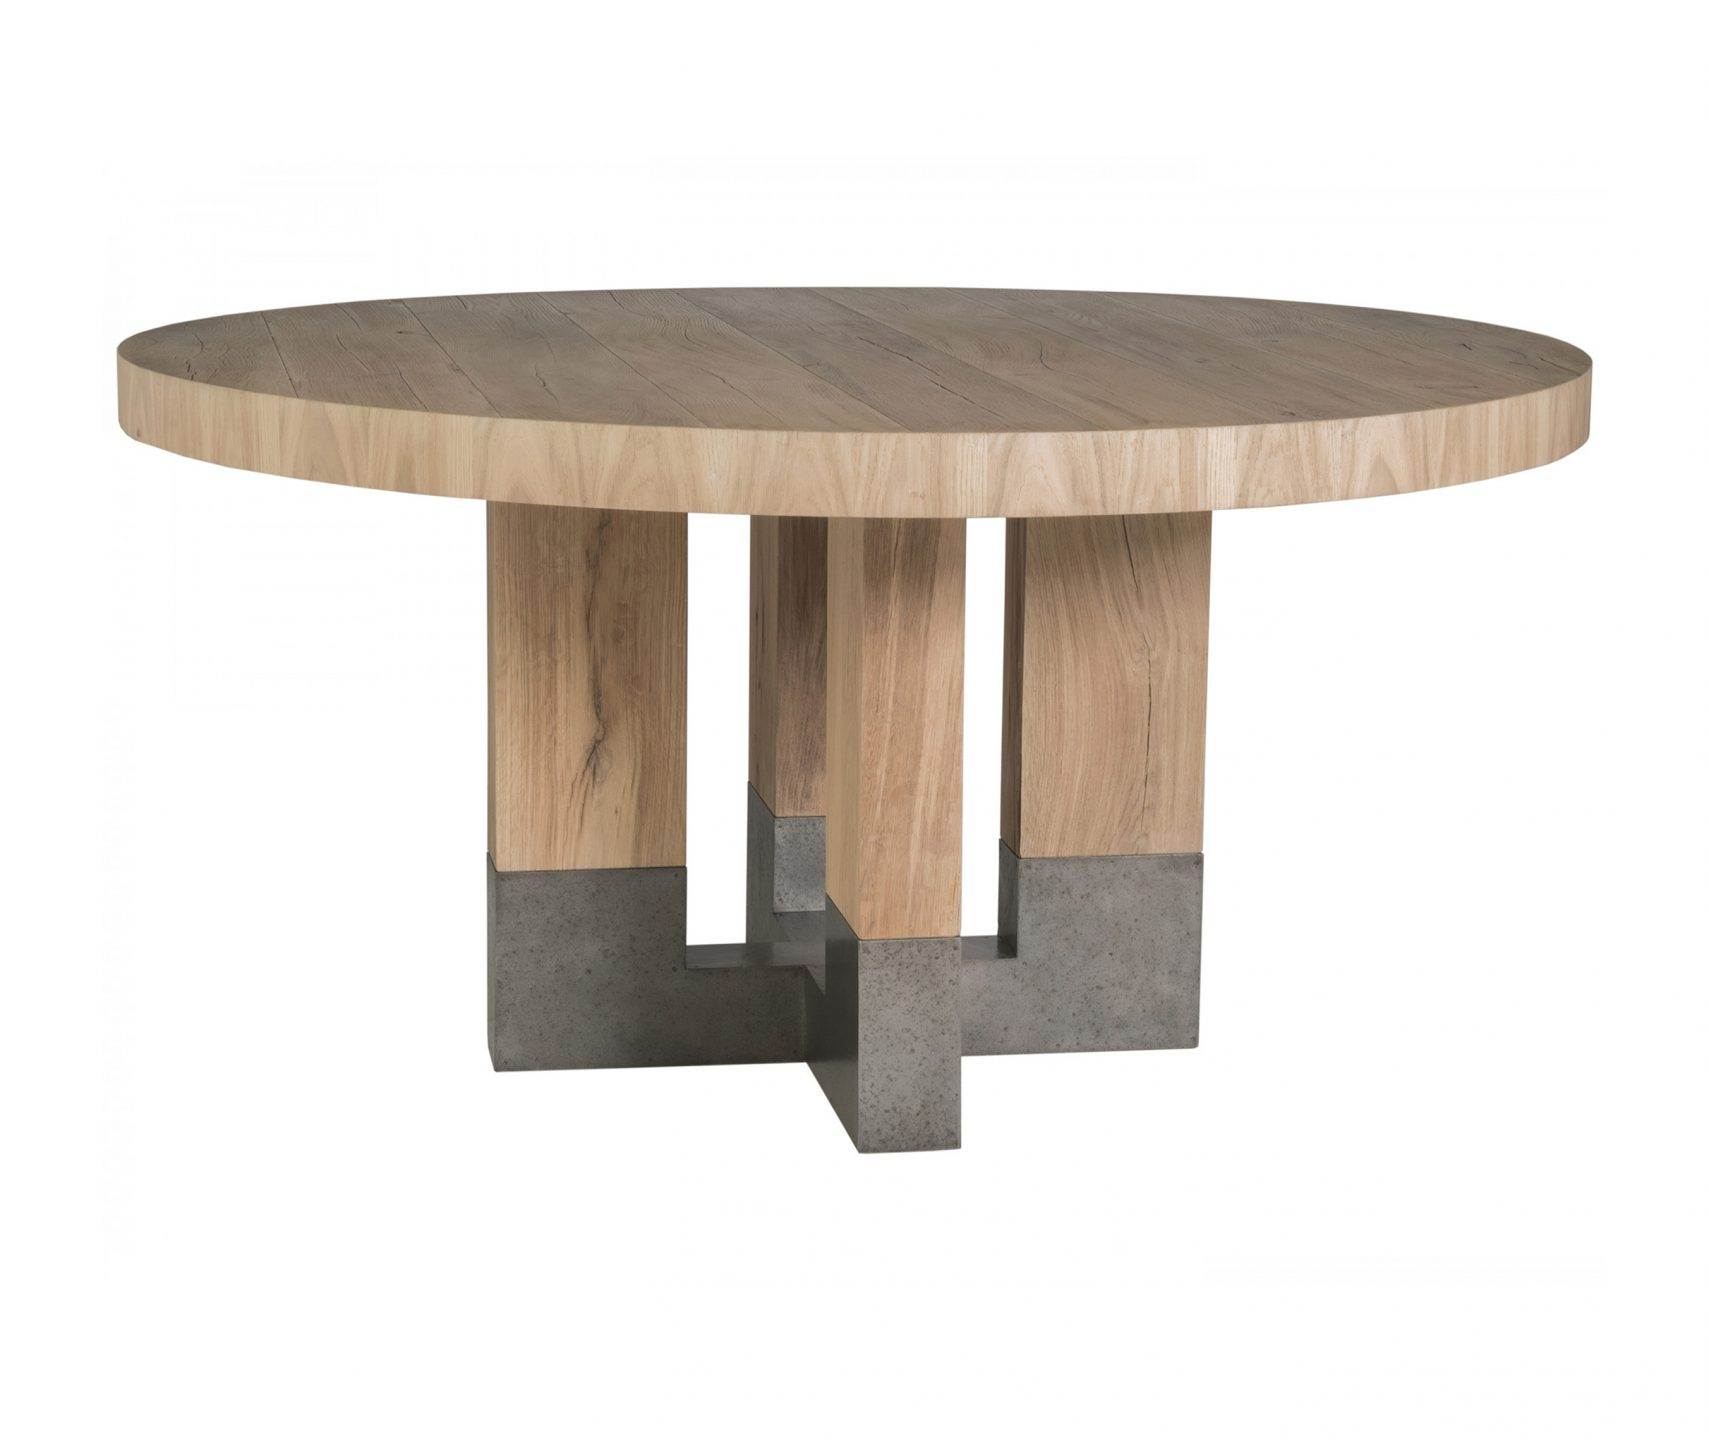 Lexington Home Brands_Verite Round Dining Table 1_int_products